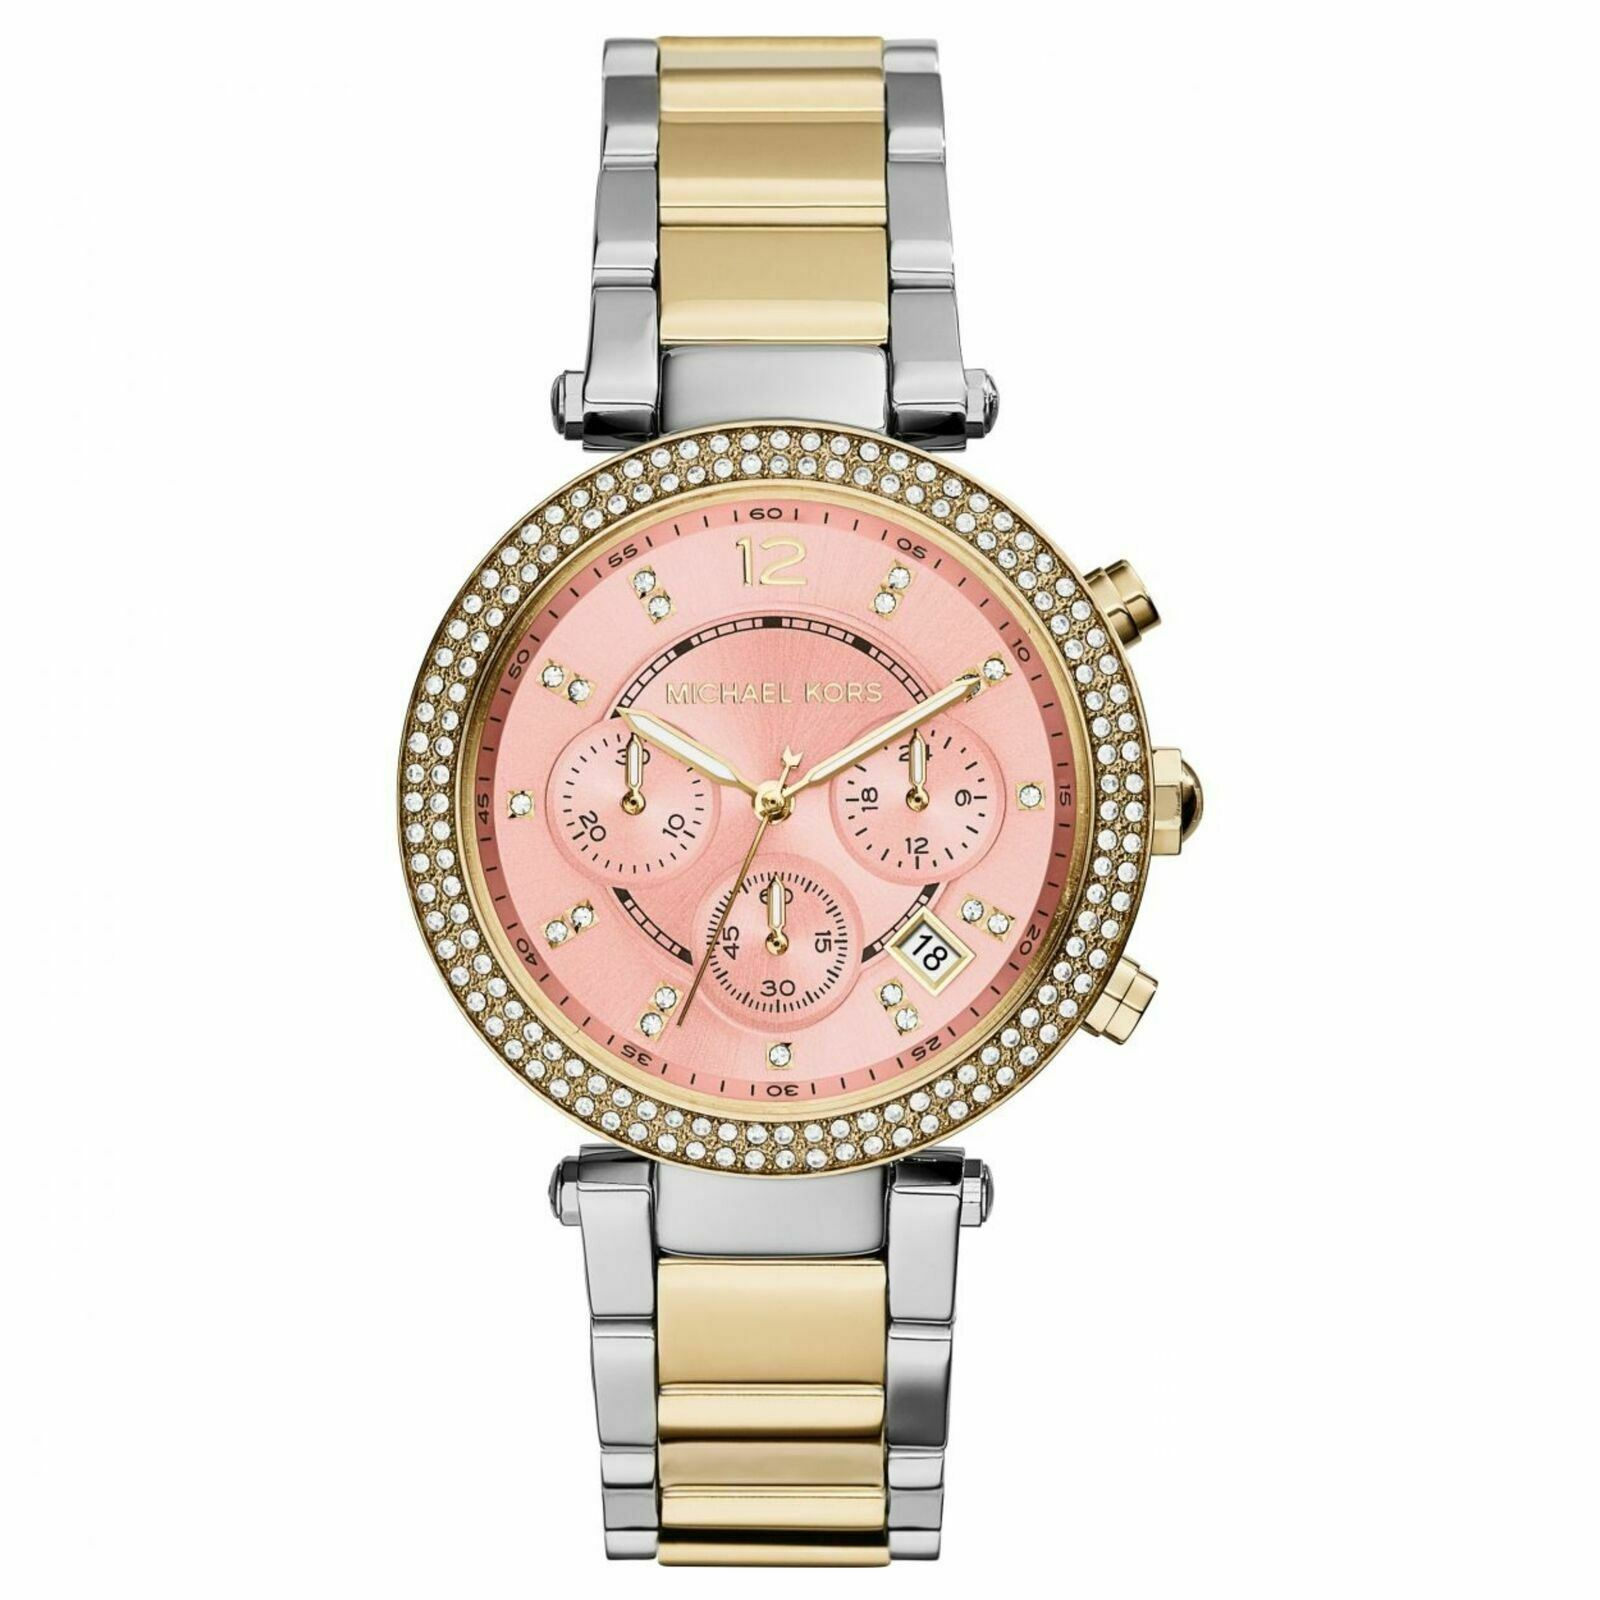 Details about Michael Kors Silver Parker Chronograph Pink Dial Two Tone Ladies Watch MK6140